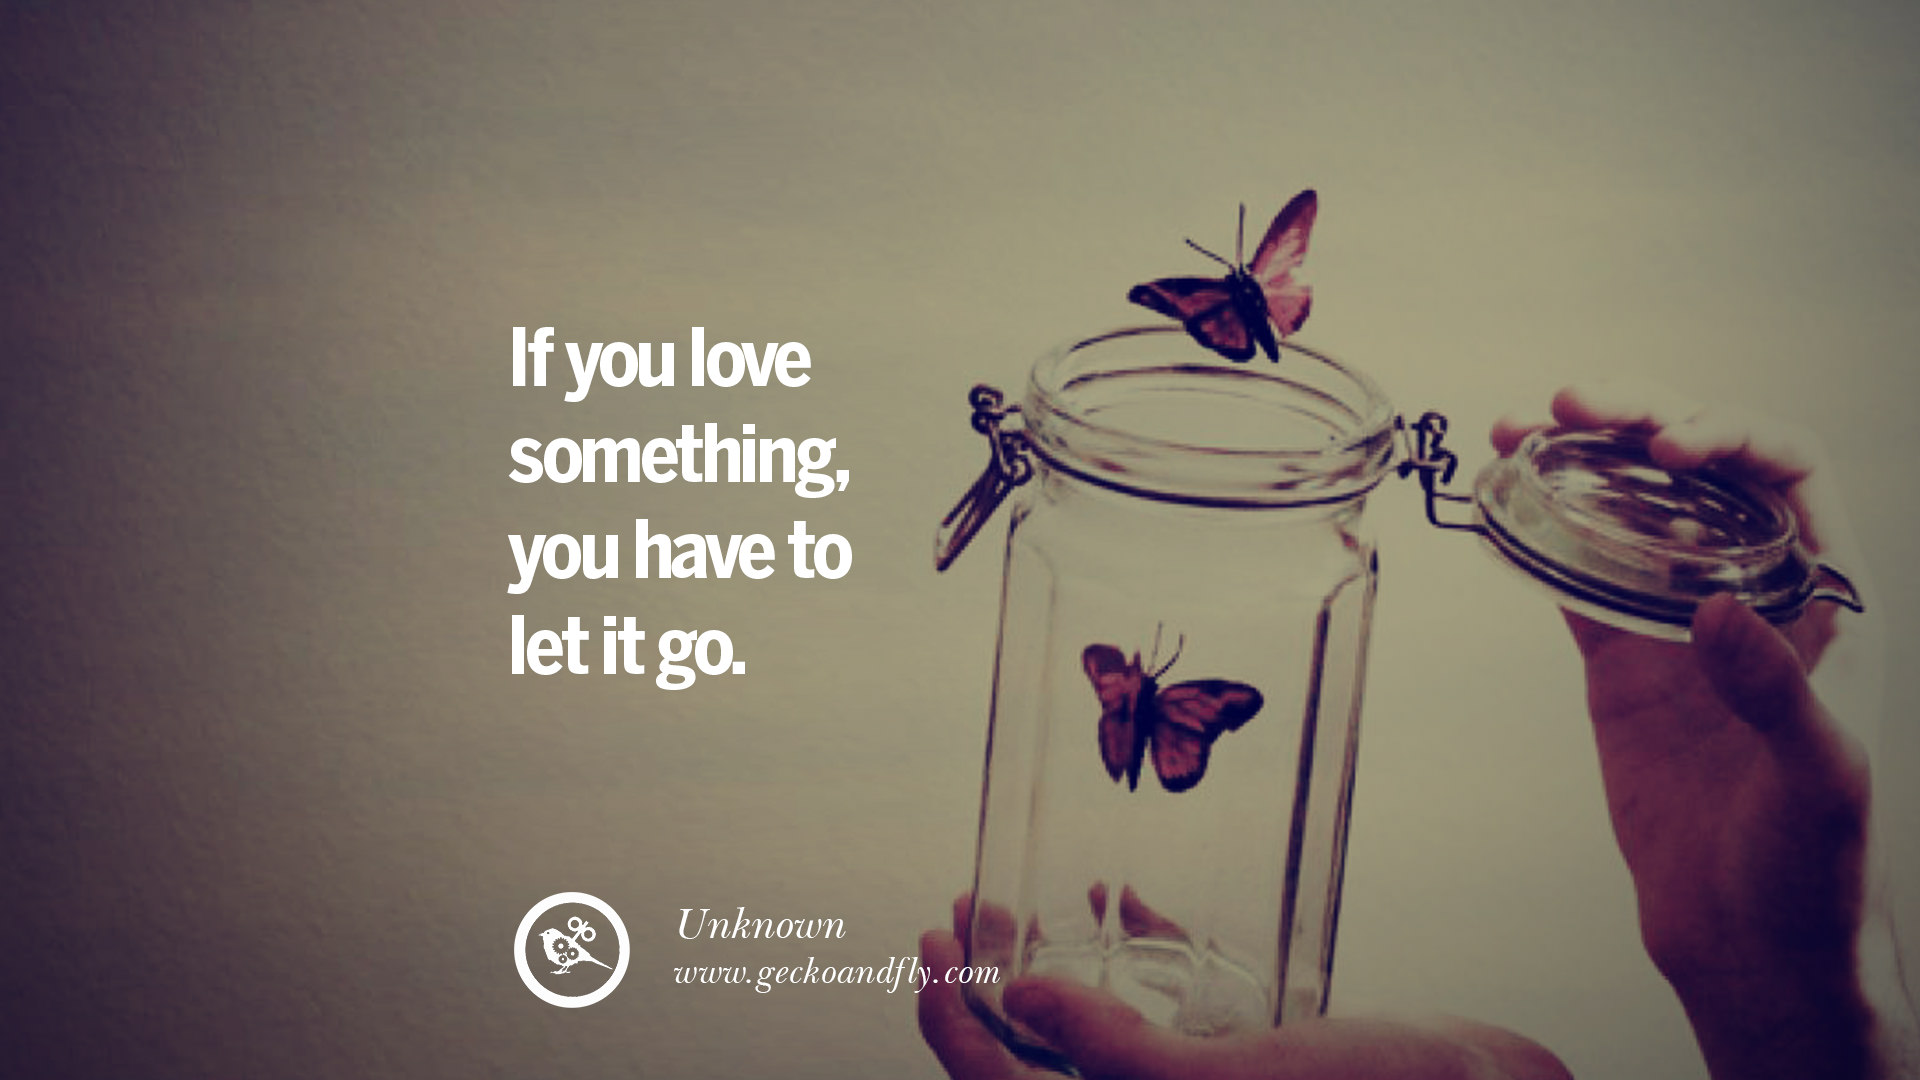 Let It Go Quotes New 50 Quotes On Life About Keep Moving On And Letting Go Of Someone